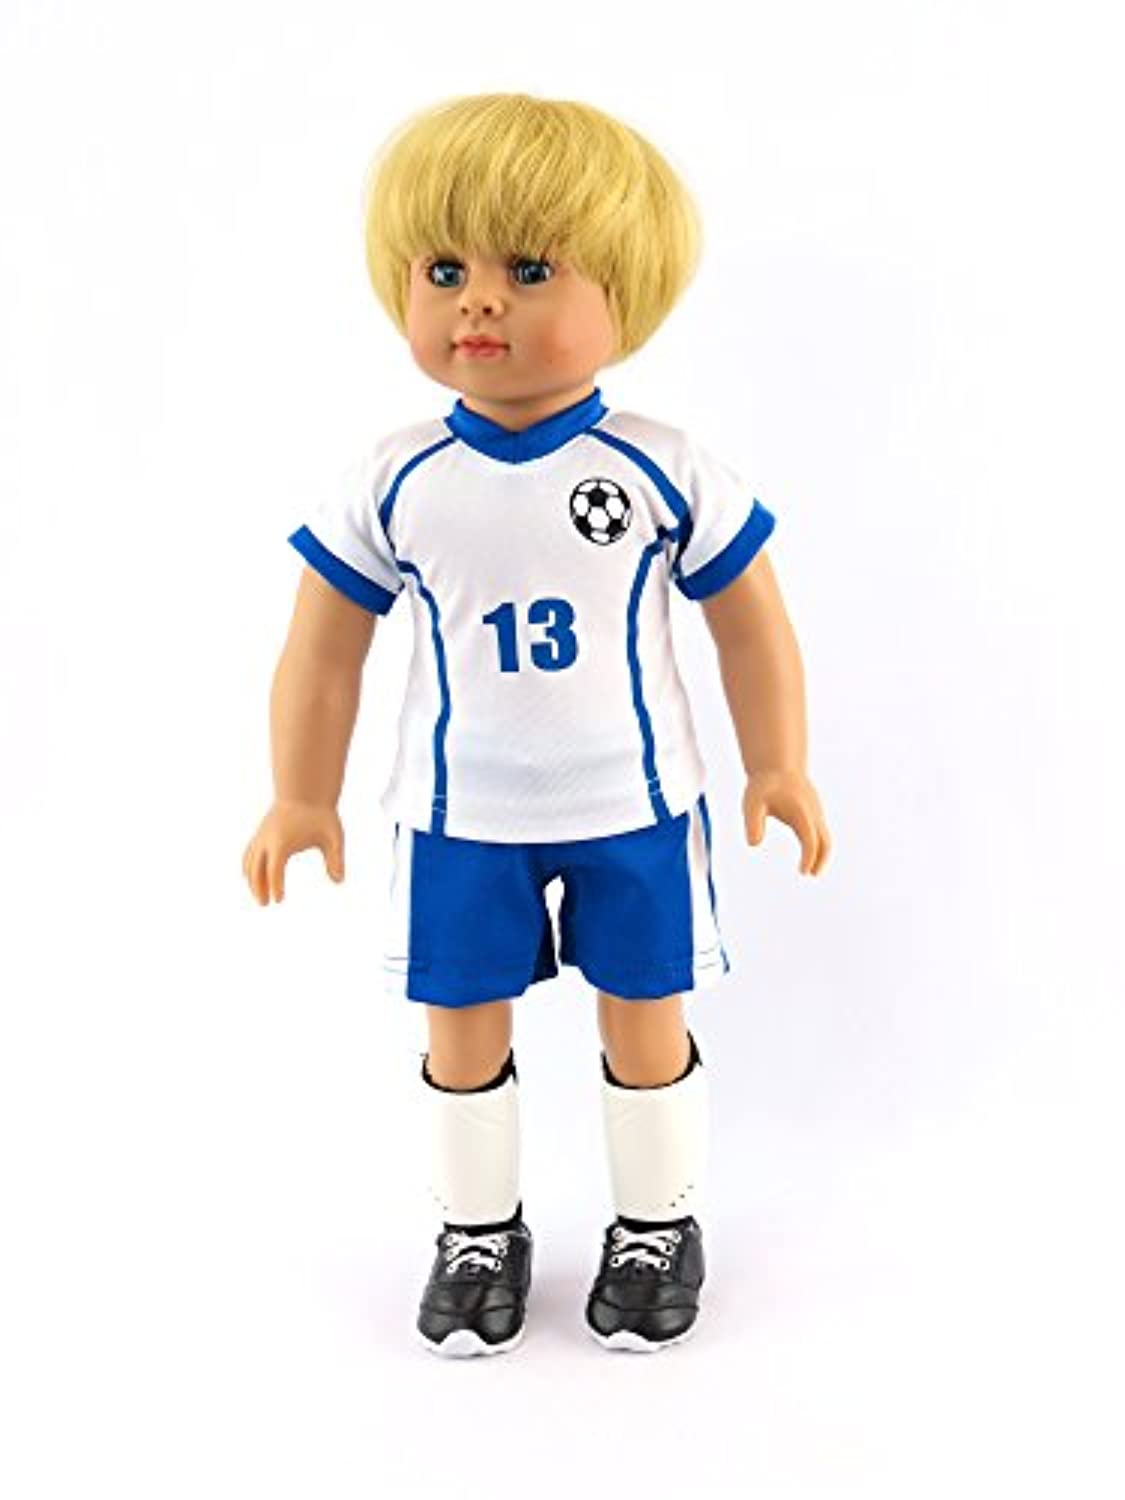 Caden The Super Soccer Player 4-piece Outfit with Boy Doll | Fits 18